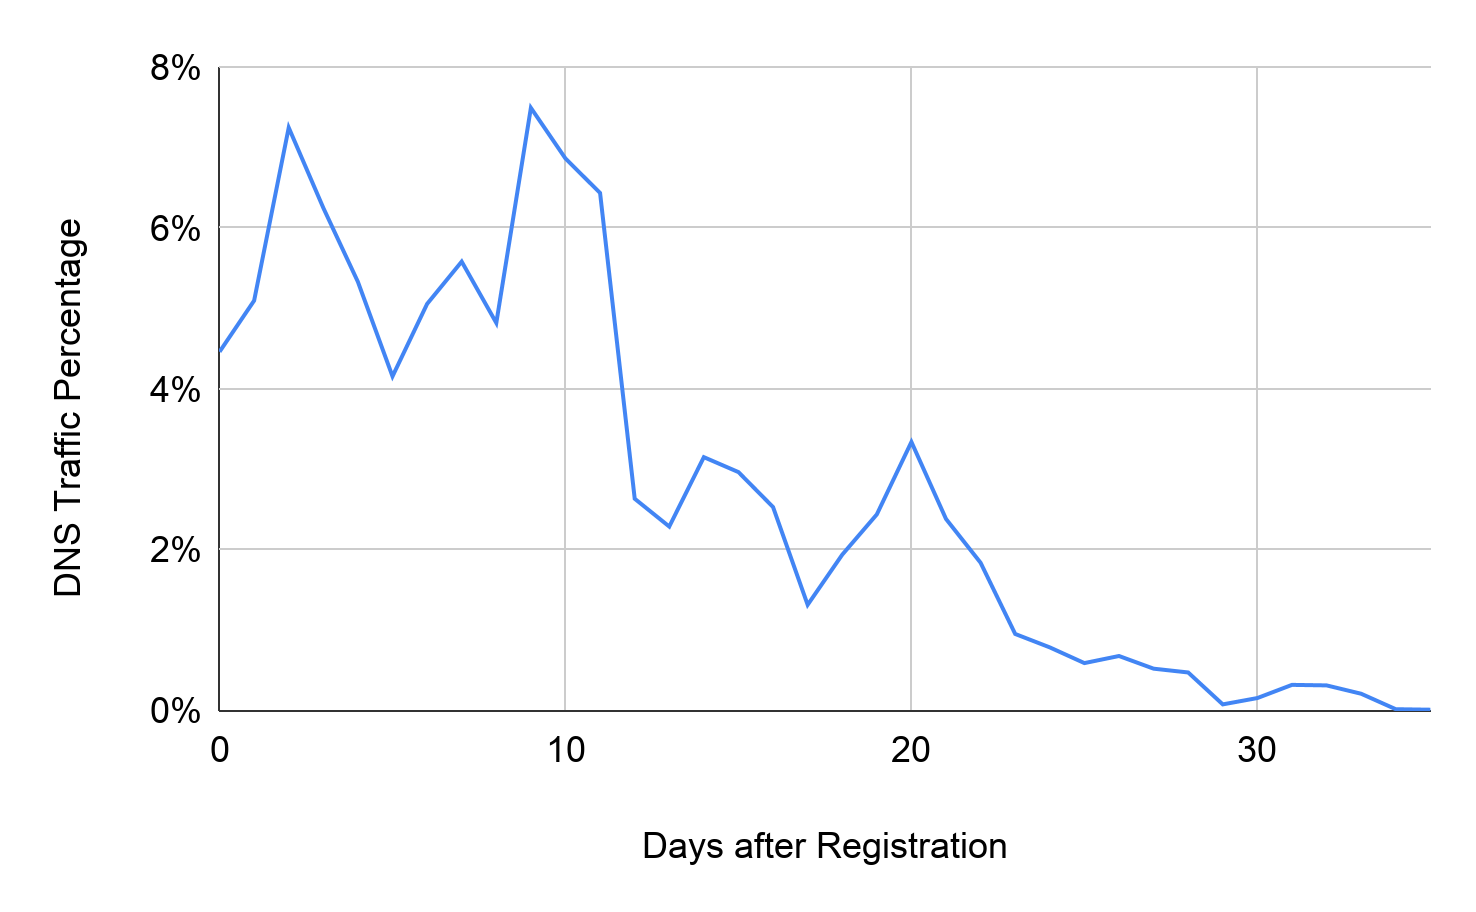 The x-axis represents days after registration and the y-axis represents DNS traffic percentage. The blue line shows DNS traffic distribution of malicious domains after registration. Identifying these early allows proactive DNS security.